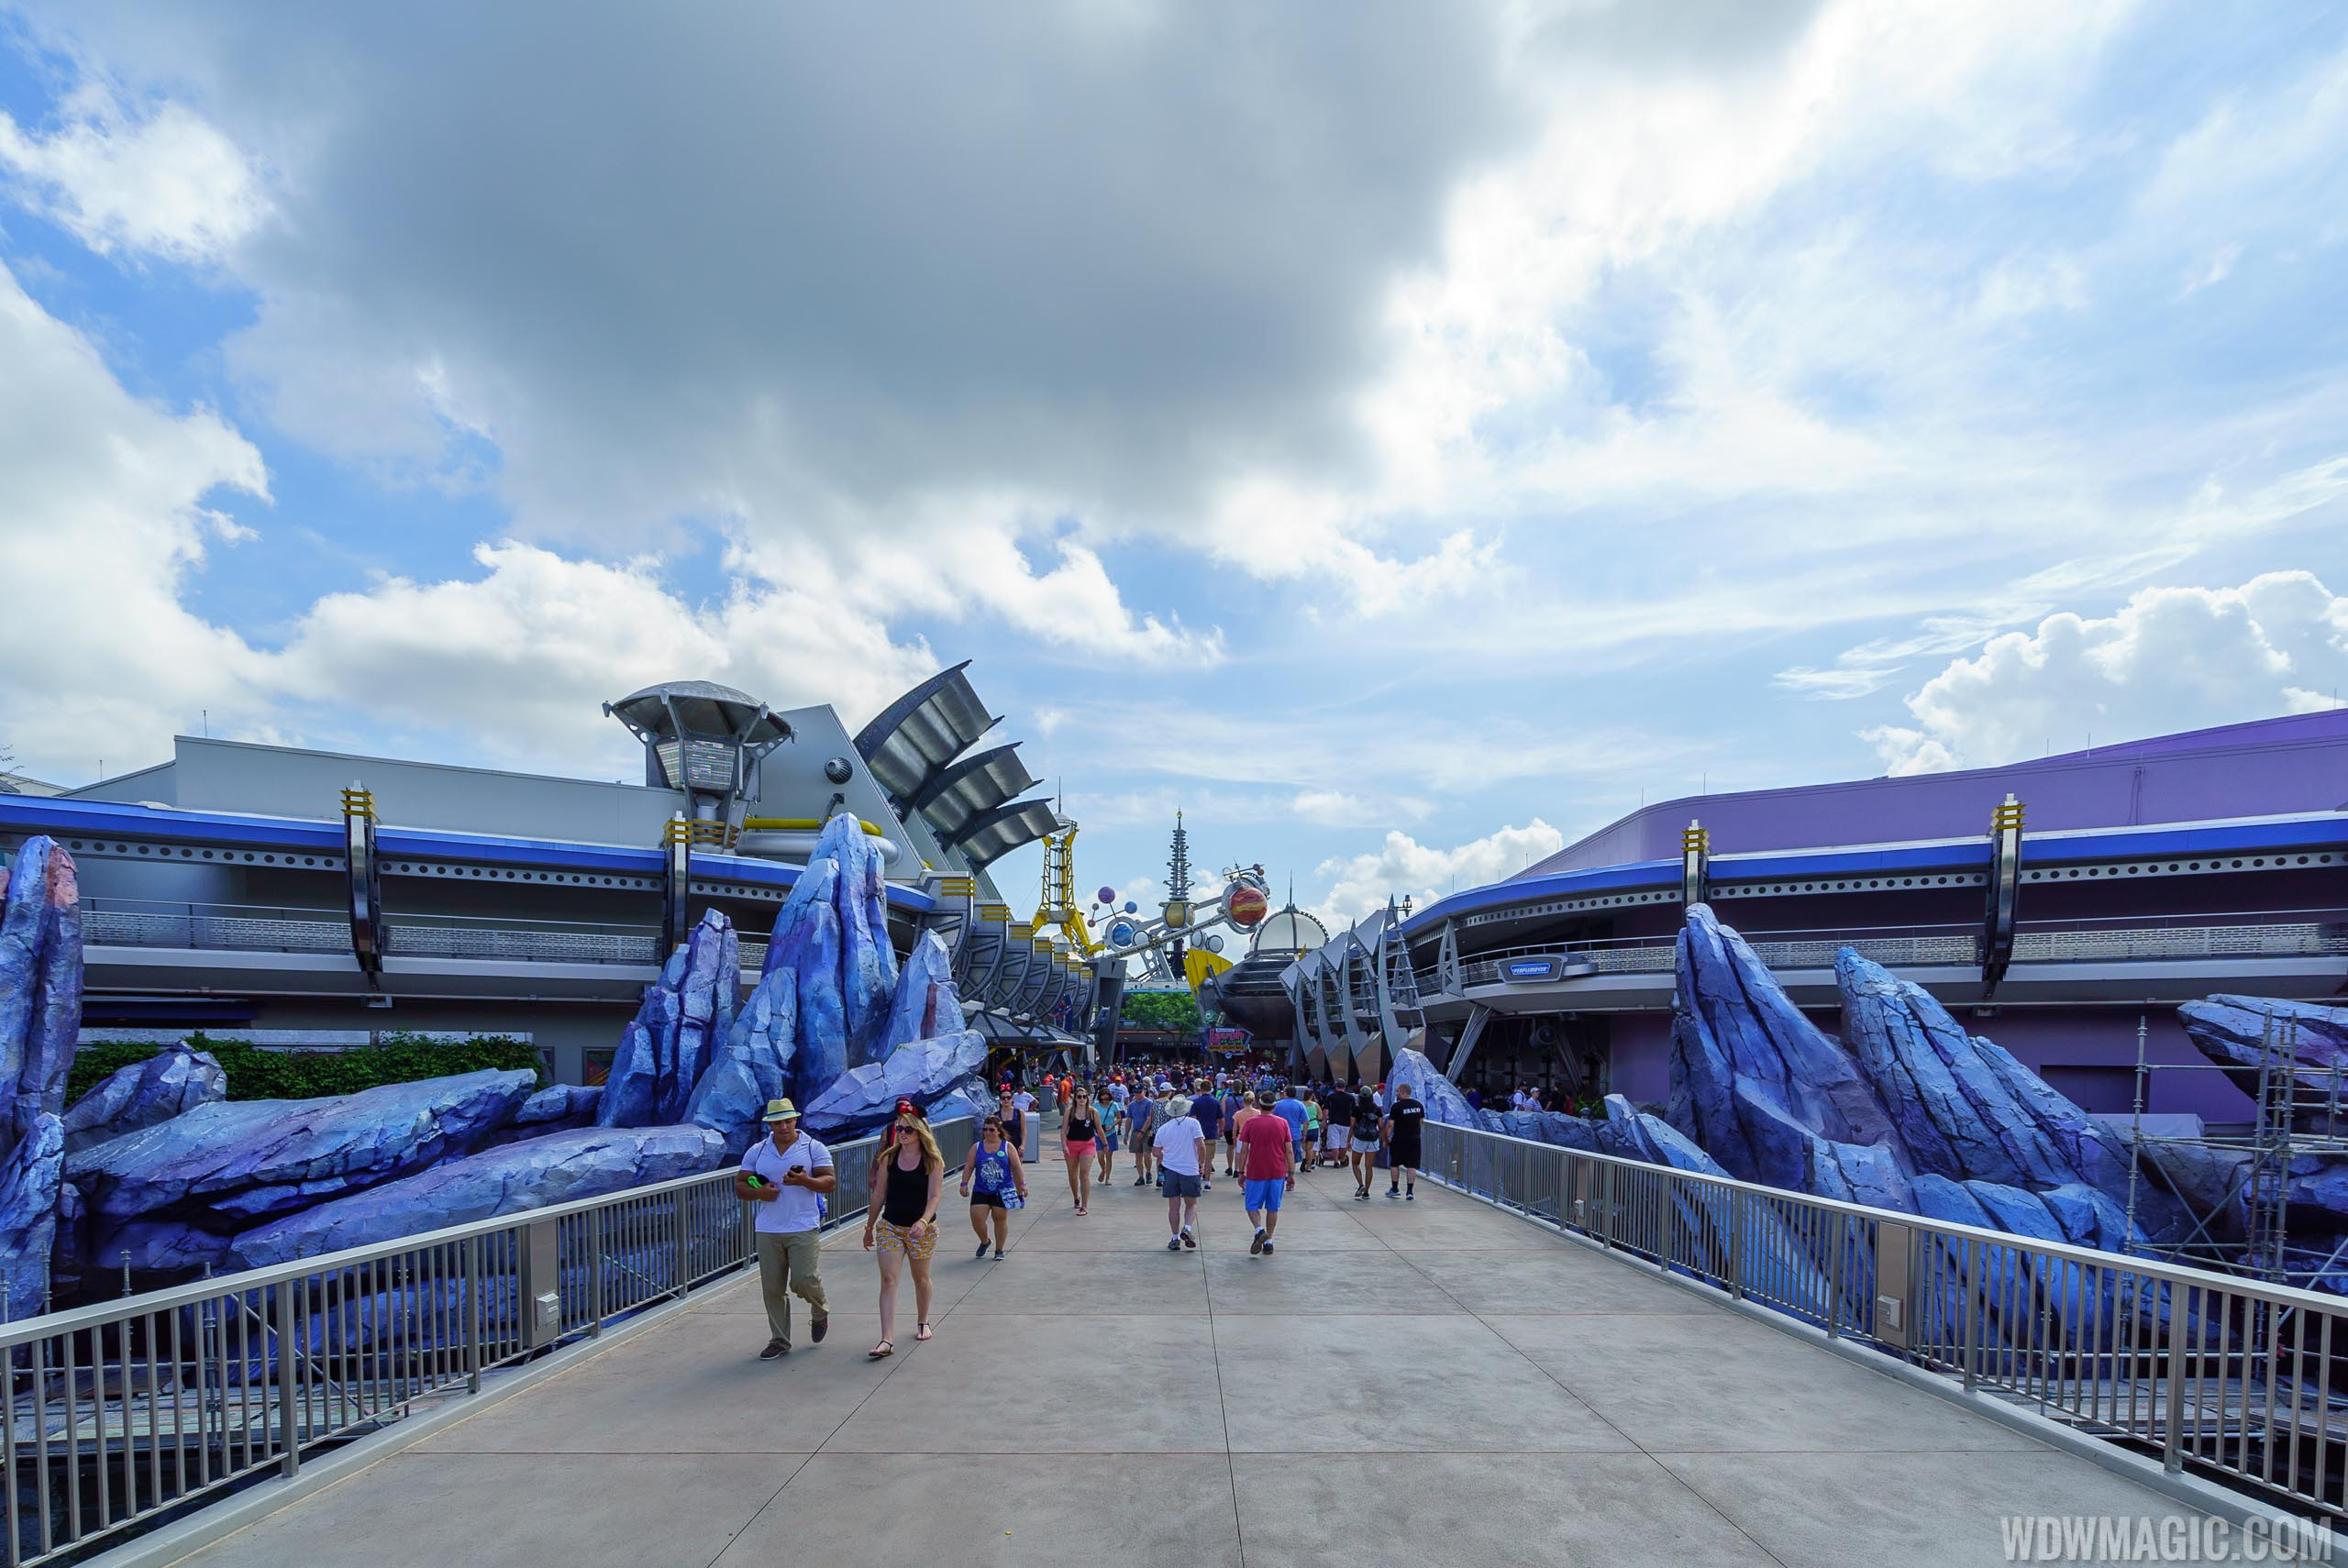 Tomorrowland at the Magic Kingdom